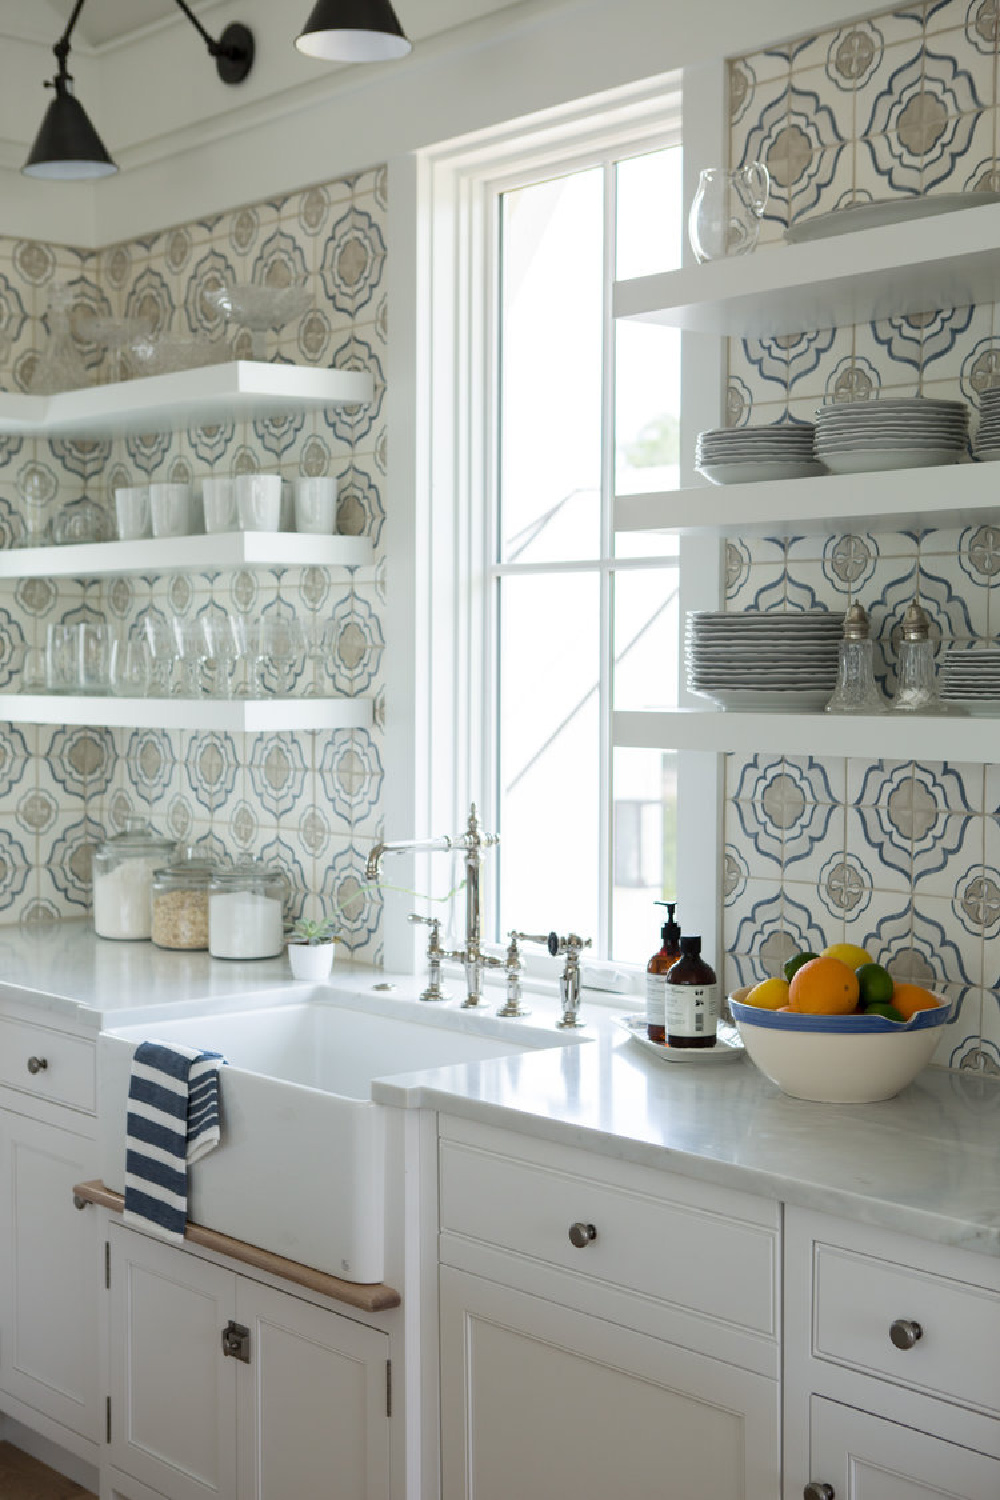 Classic white coastal cottage kitchen by Lisa Furey with handmade blue and white encaustic backsplash. Discover more Coastal Cottage Inspo, Paint Colors & Whimsy Quotes Now!